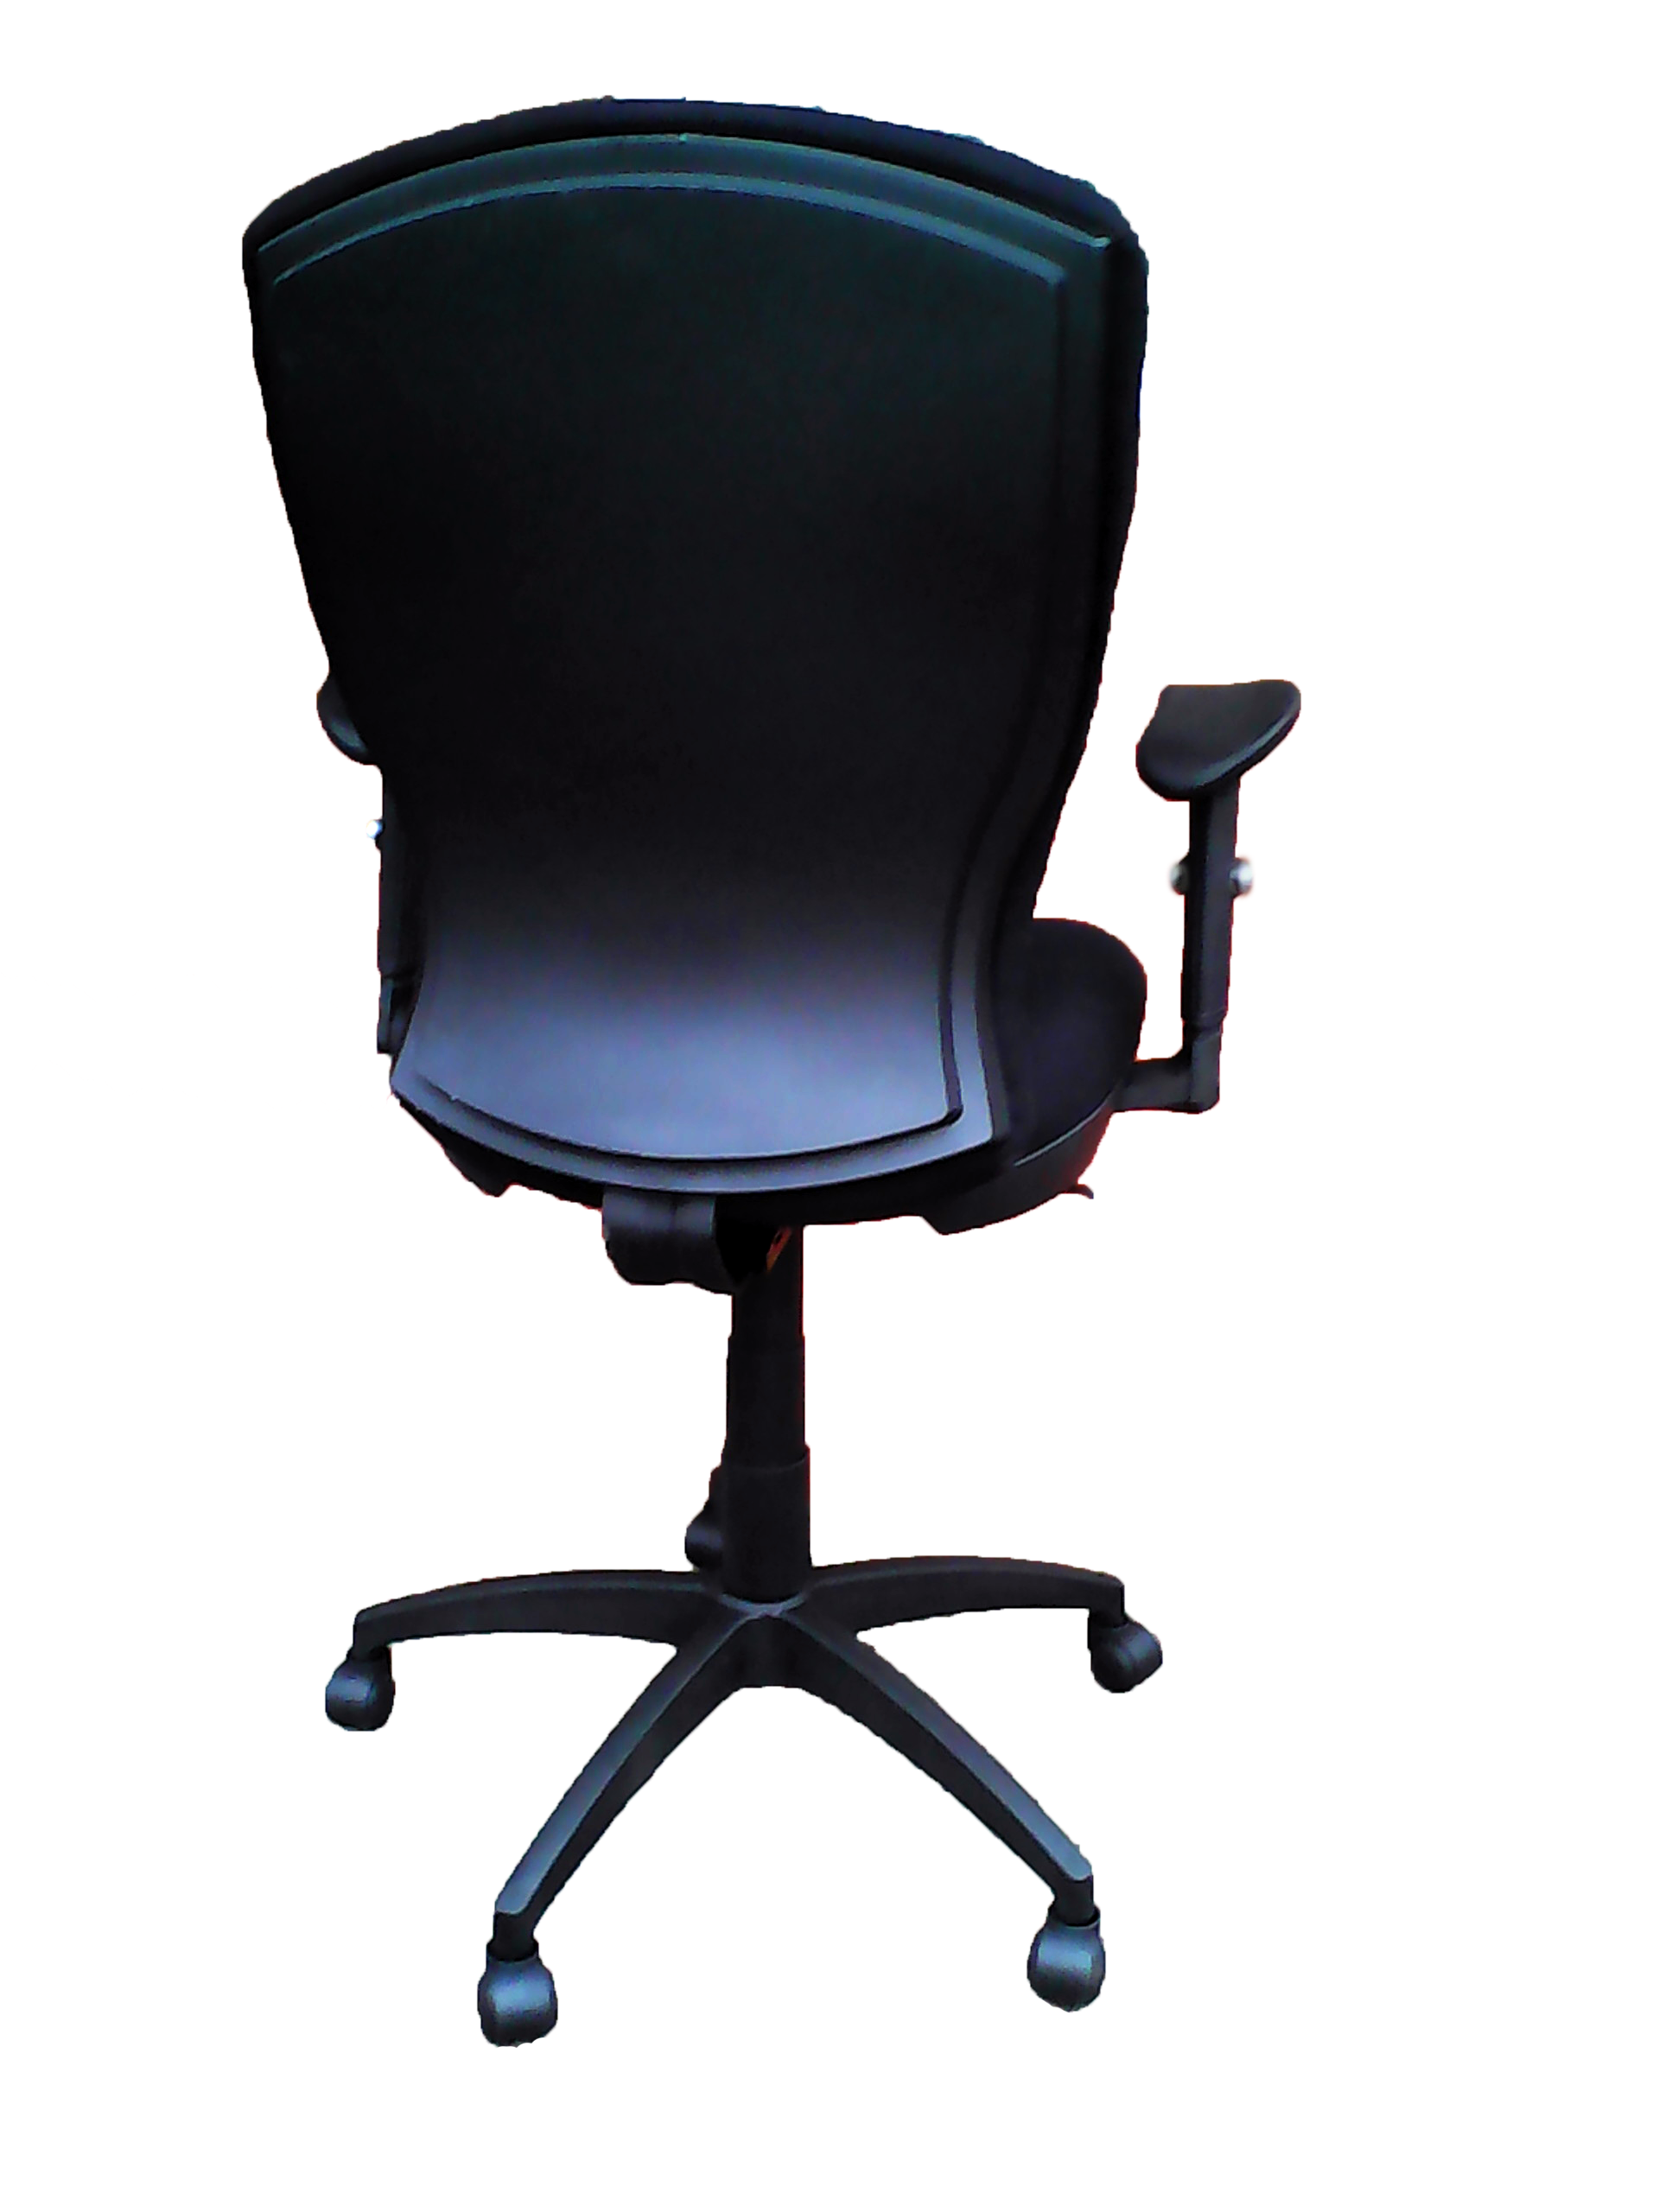 with redesign computer chair image the desk living of office ways leather as mat design clean to home pertaining simple room